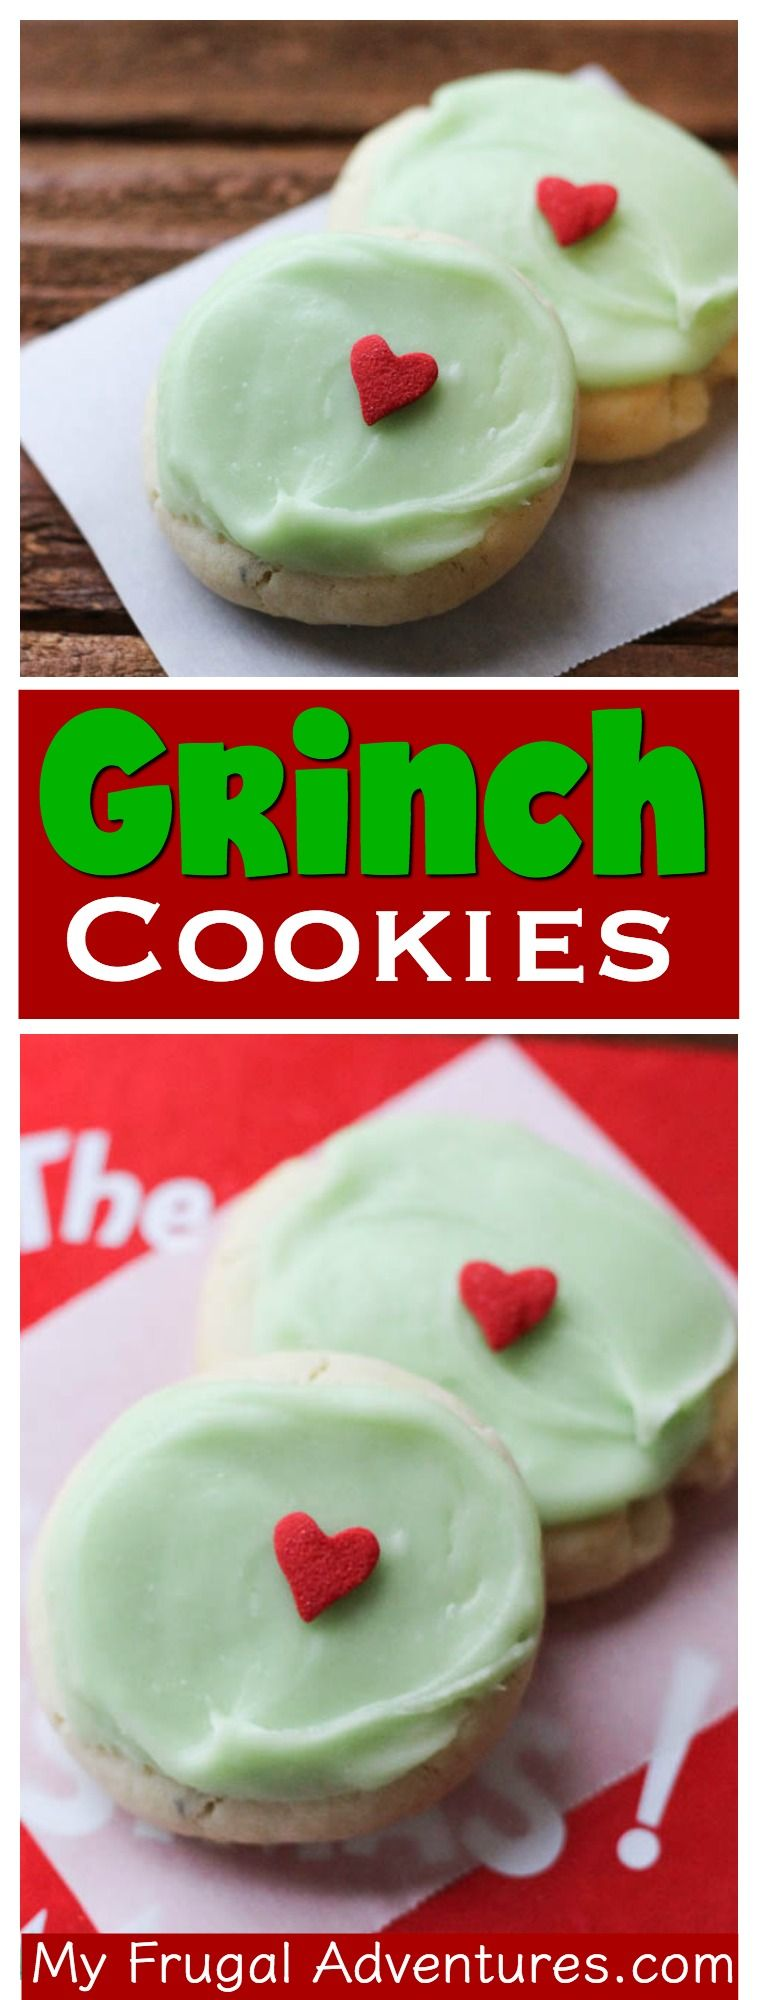 Grinch Christmas Cookies - My Frugal Adventures